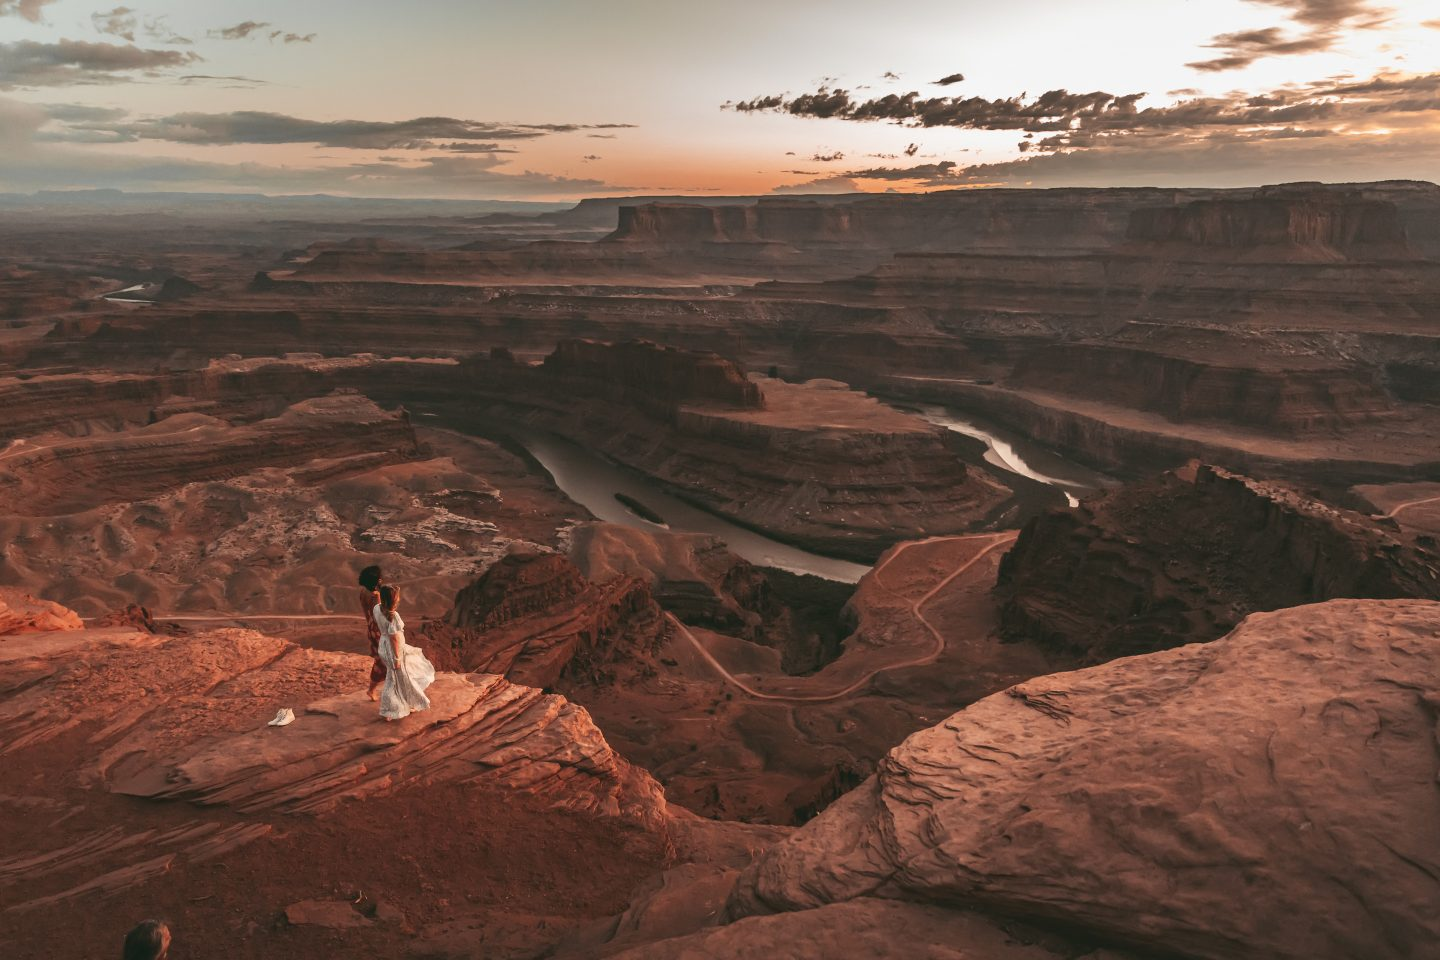 Two women look out over the sunset at Dead Horse Point in Utah